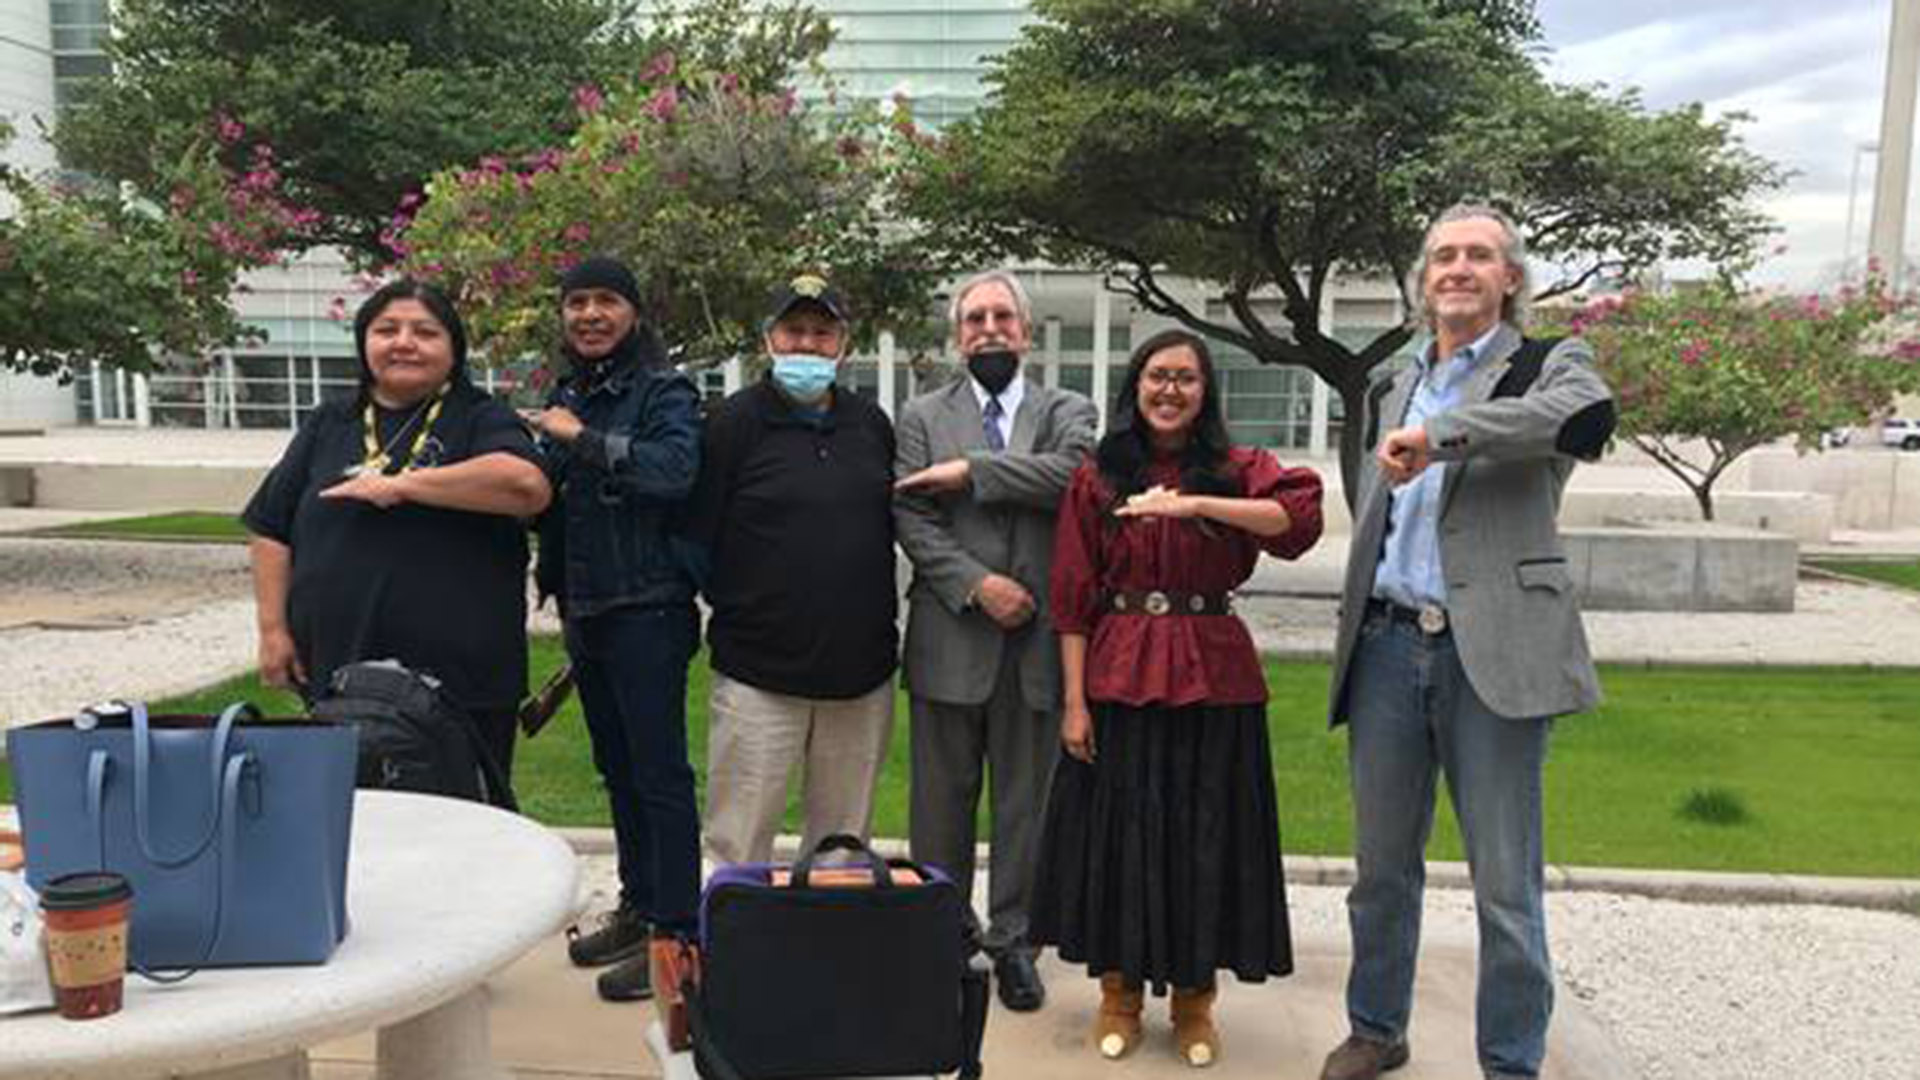 Members of Apache Stronghold, its legal team, and witness' in the case pose before the hearing for the preliminary injunction in Apache Stronghold v. United States of America Feb. 3, 2020.